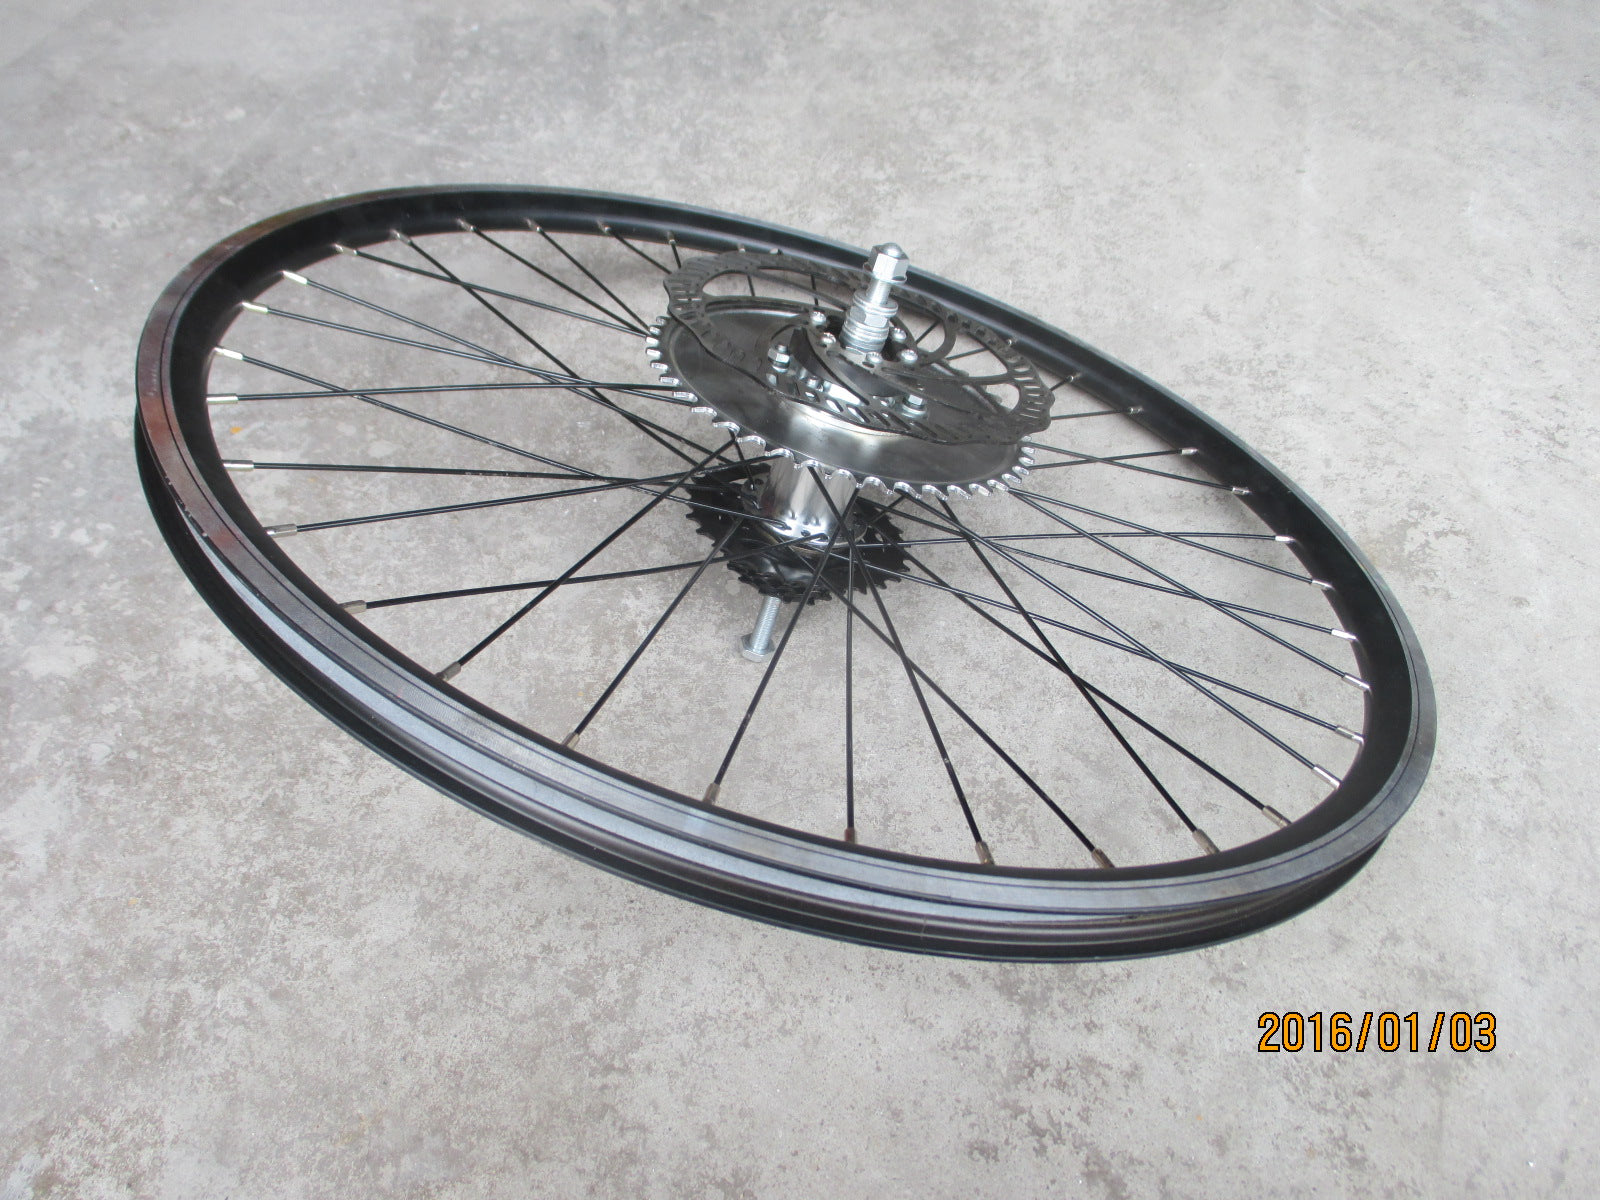 "HD AXLE 26"" rim wheel for single speed 115 to135mm frame drop out"